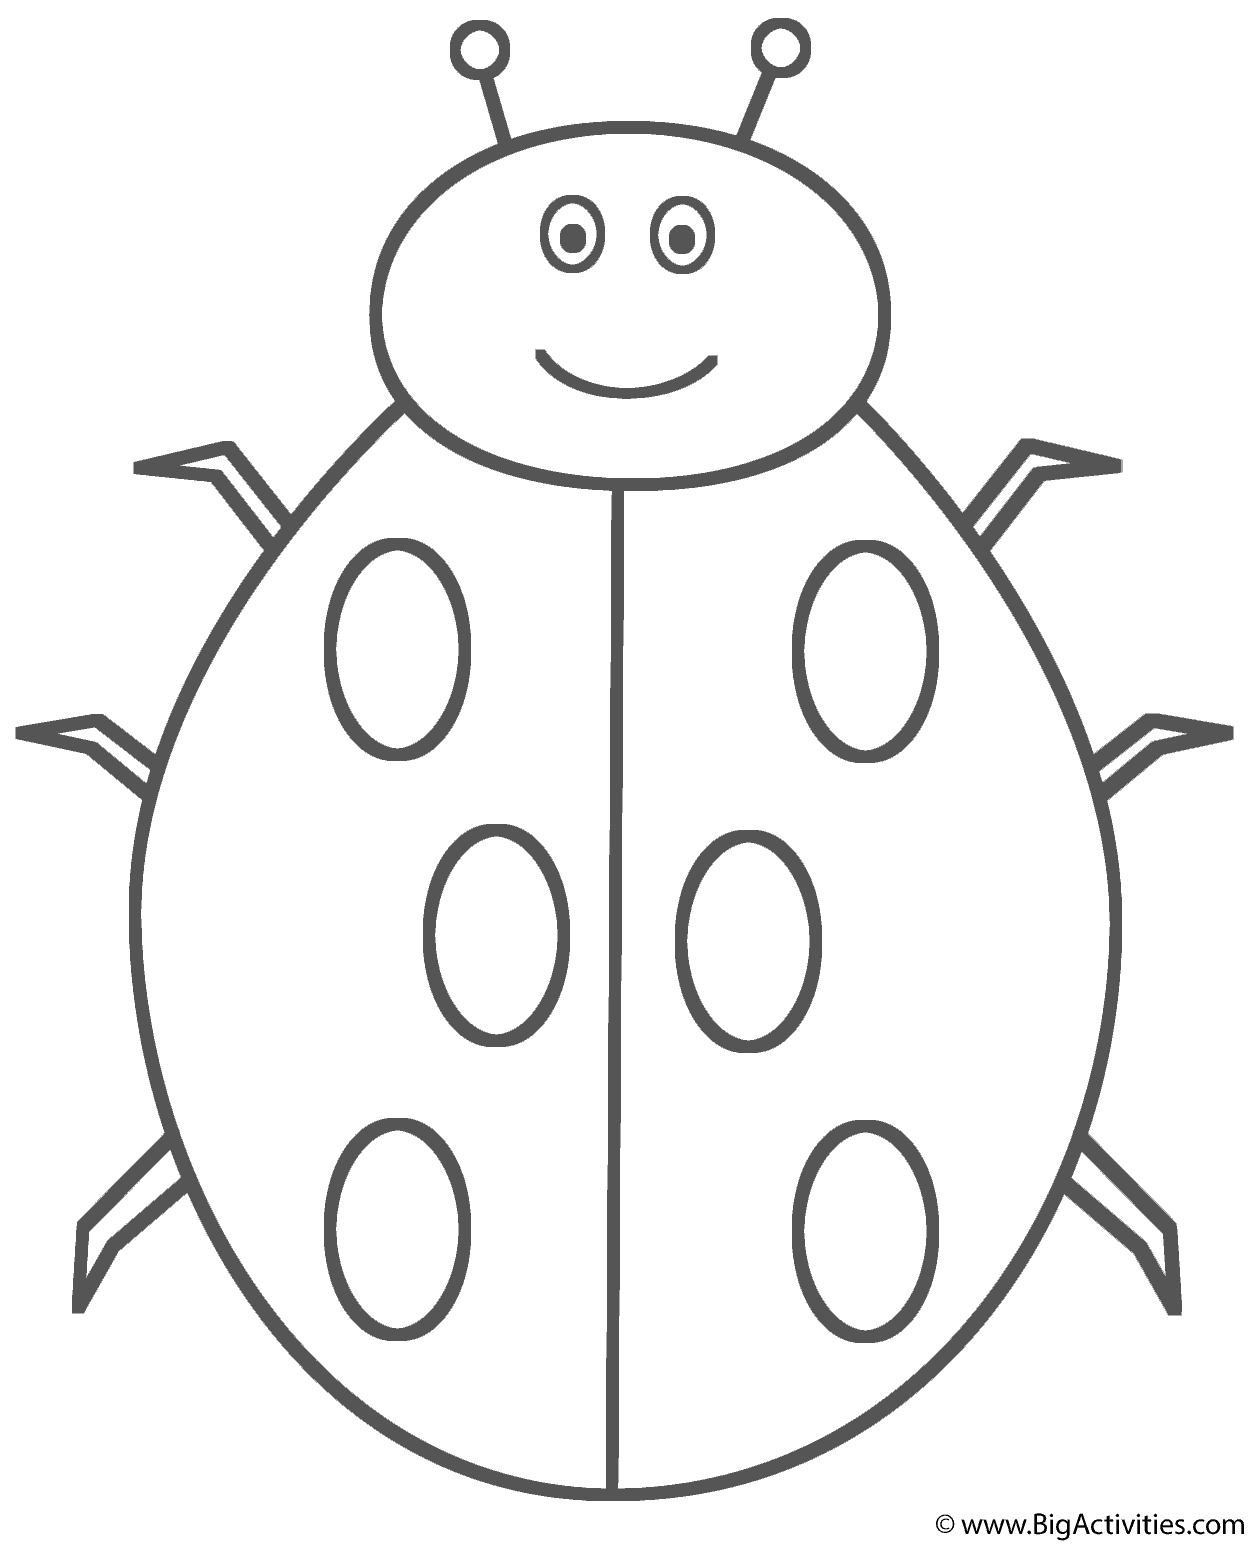 Coloring page mosaic pavers pinterest ladybug insects and mosaics